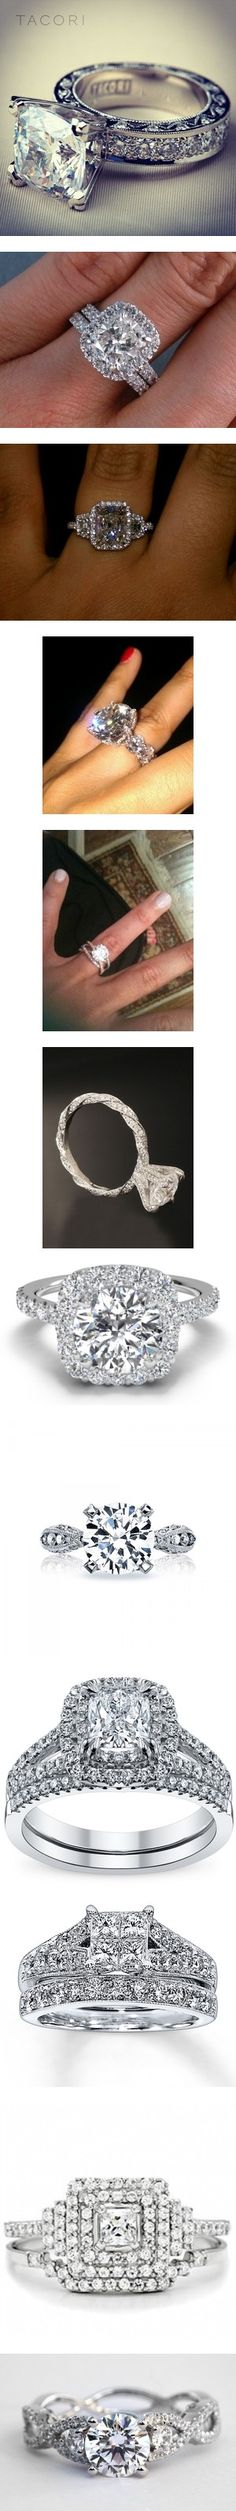 """Wedding Rings! (my DREAM wedding rings)"" by callico32 on Polyvore"